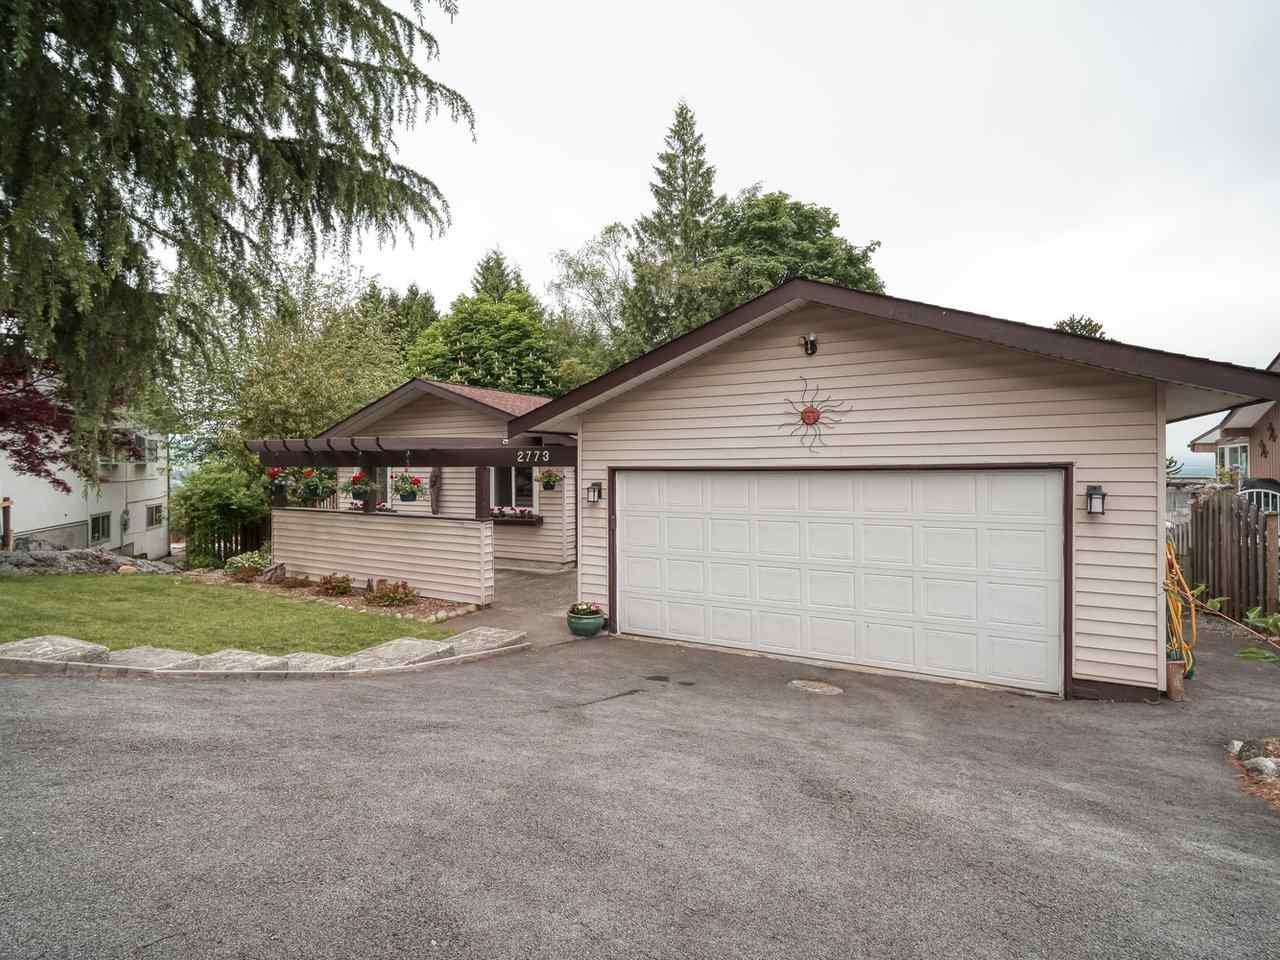 Photo 1: Photos: 2773 DAYBREAK Avenue in Coquitlam: Ranch Park House for sale : MLS®# R2457912